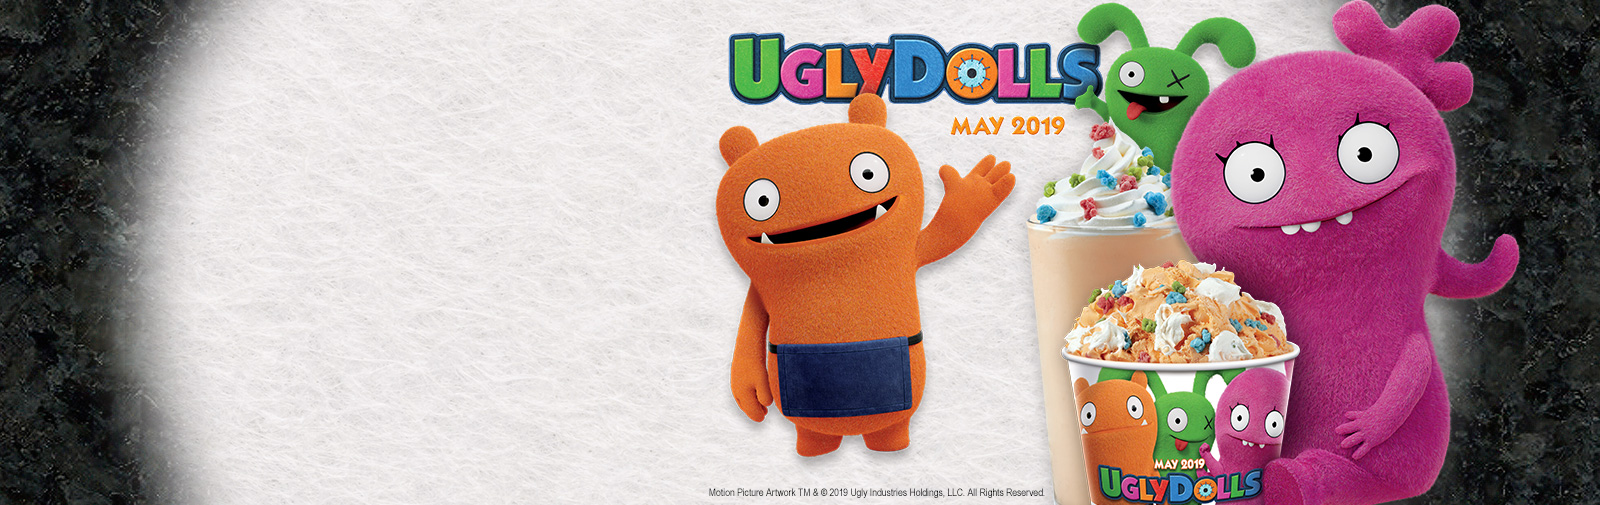 New Tangy Orange Ice Cream and a limited time Creation™ and Shake inspired by the characters from the movie Ugly Dolls.